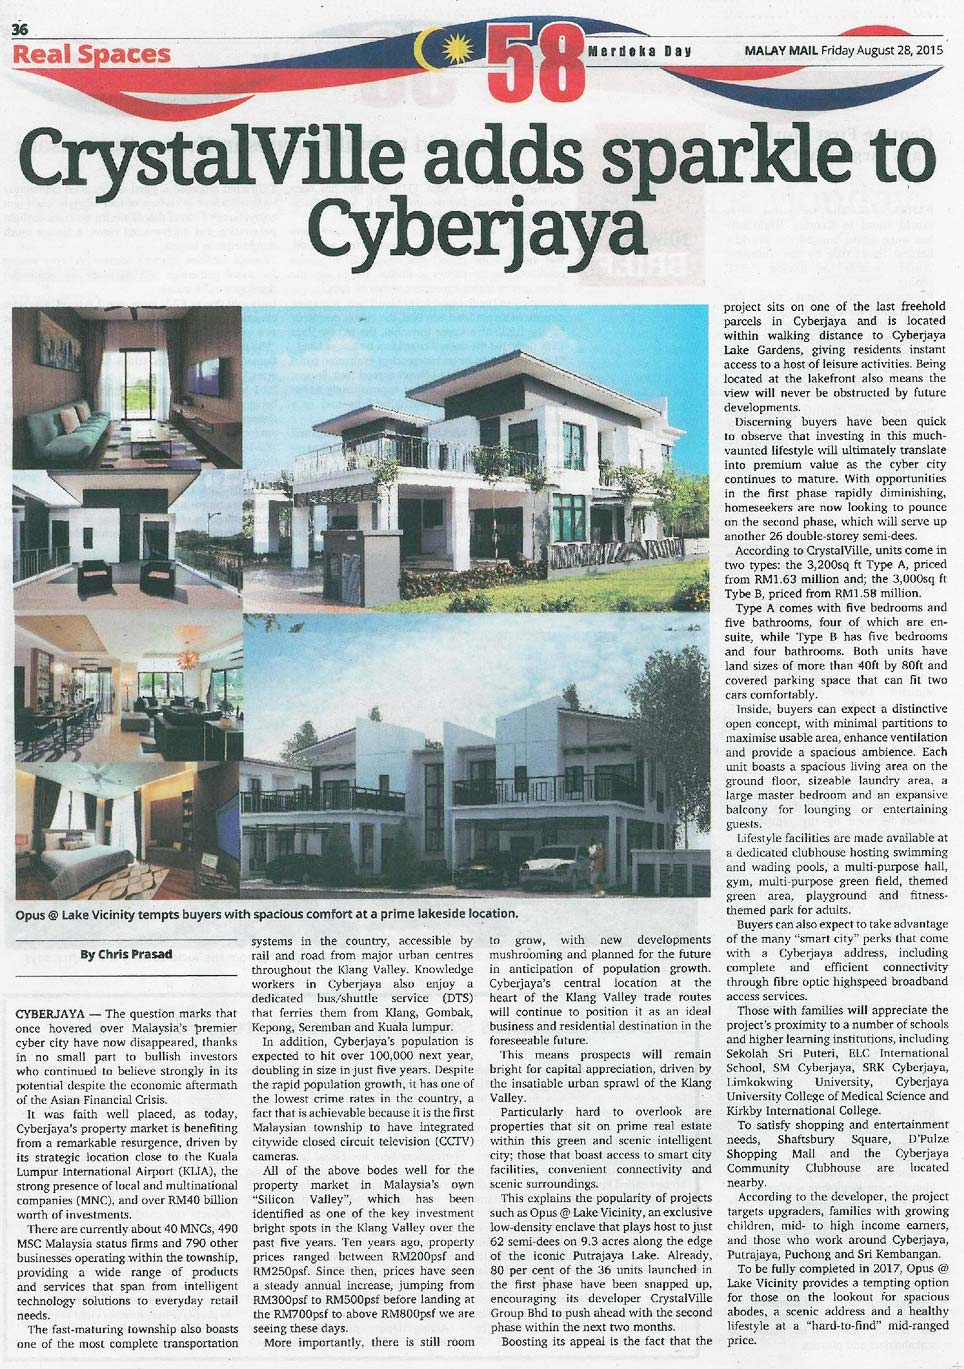 Malay-Mail-CrystalVille-adds-sparkle-to-Cyberjaya